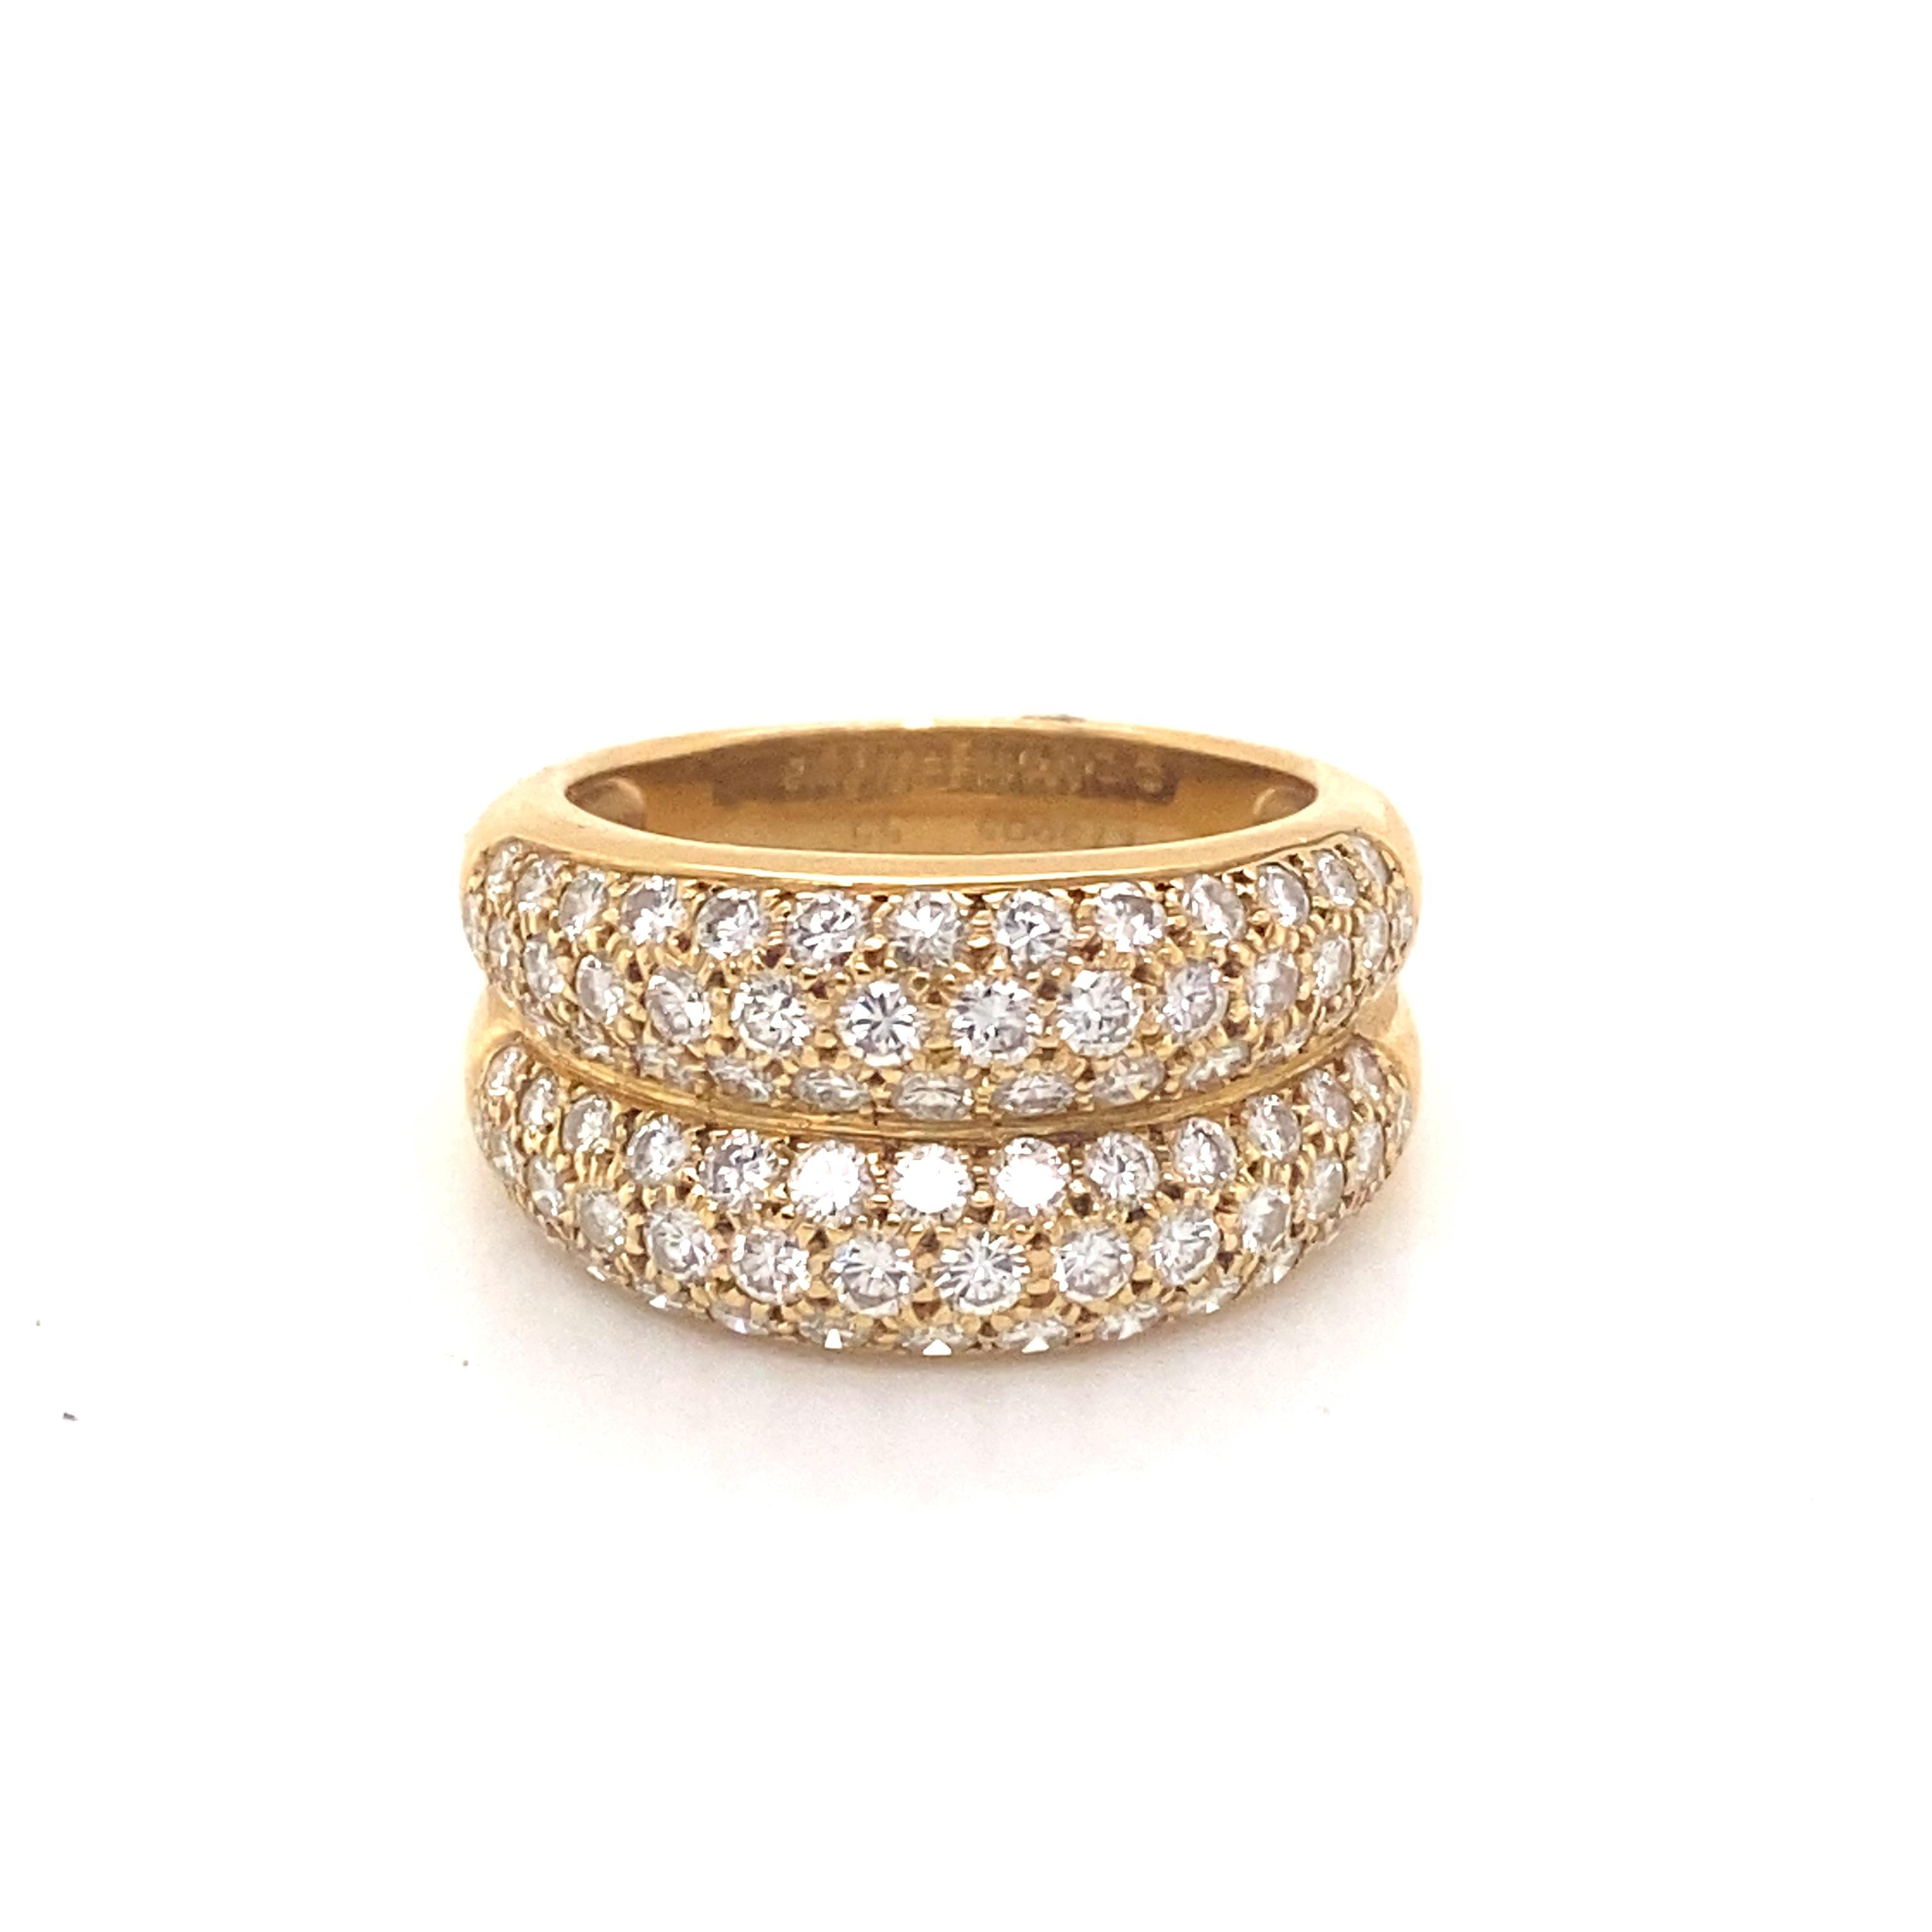 gold-and-diamond-ring-2969